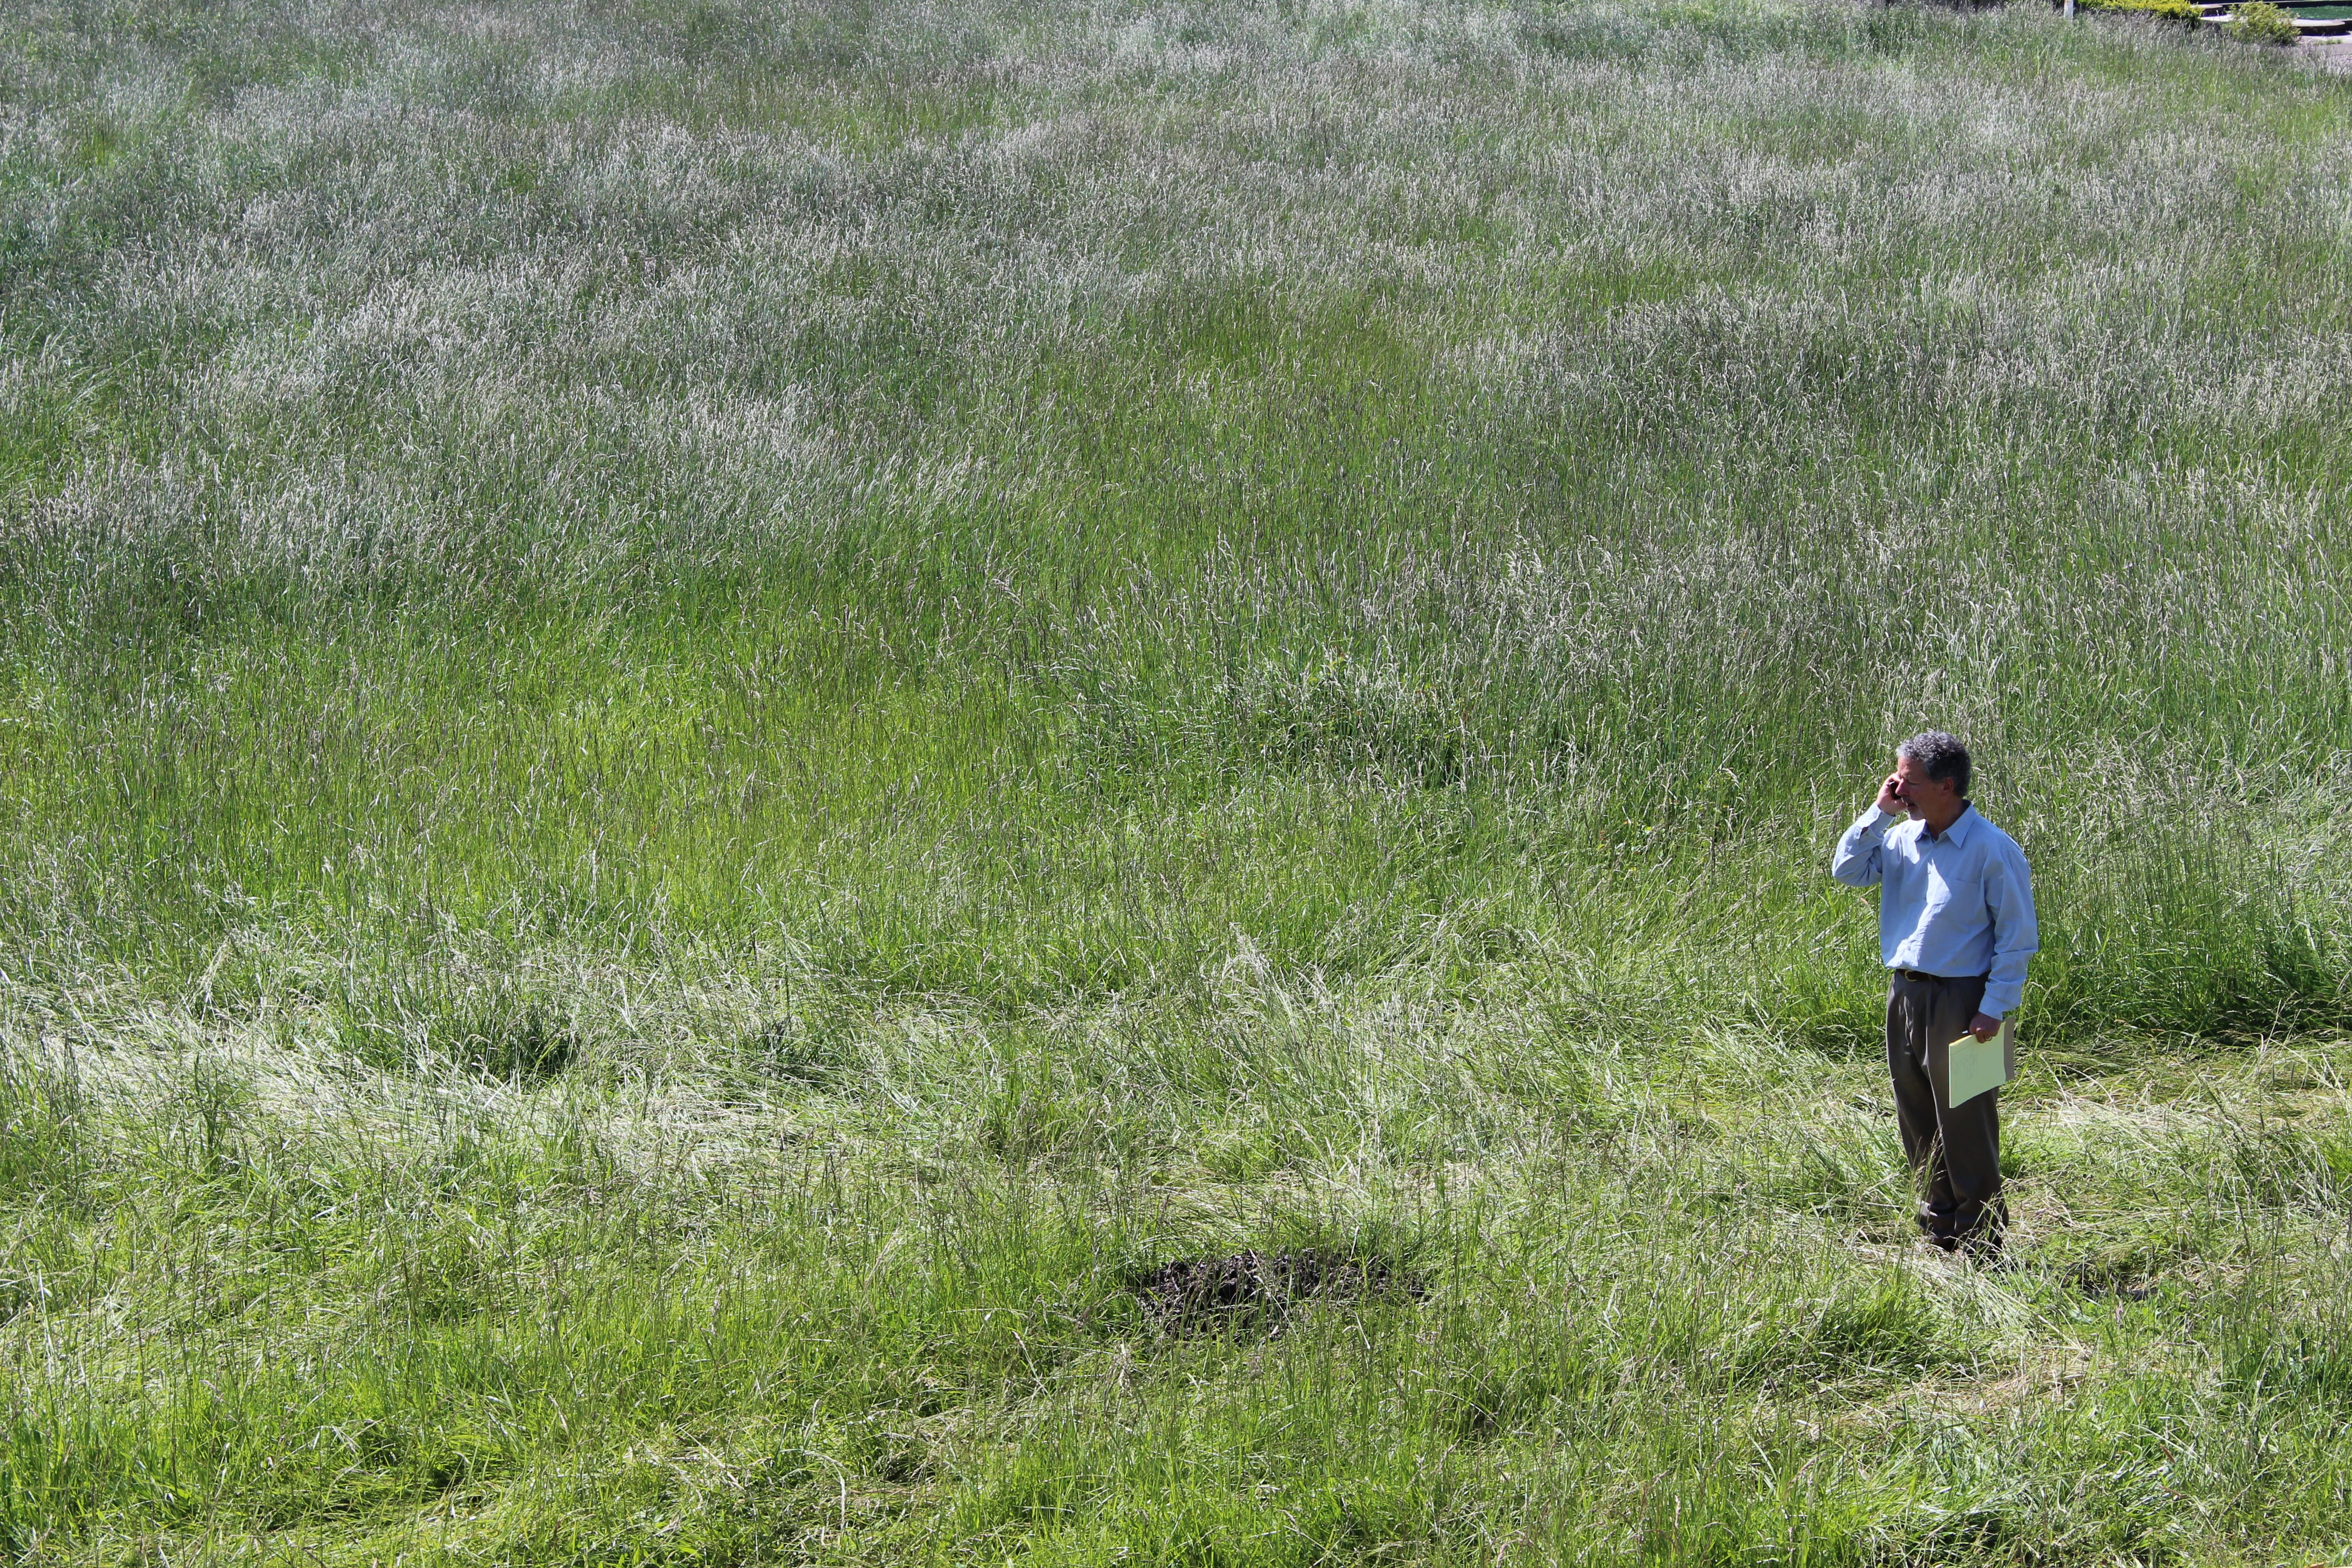 Our leader, Rob Thallon, in the neighboring field